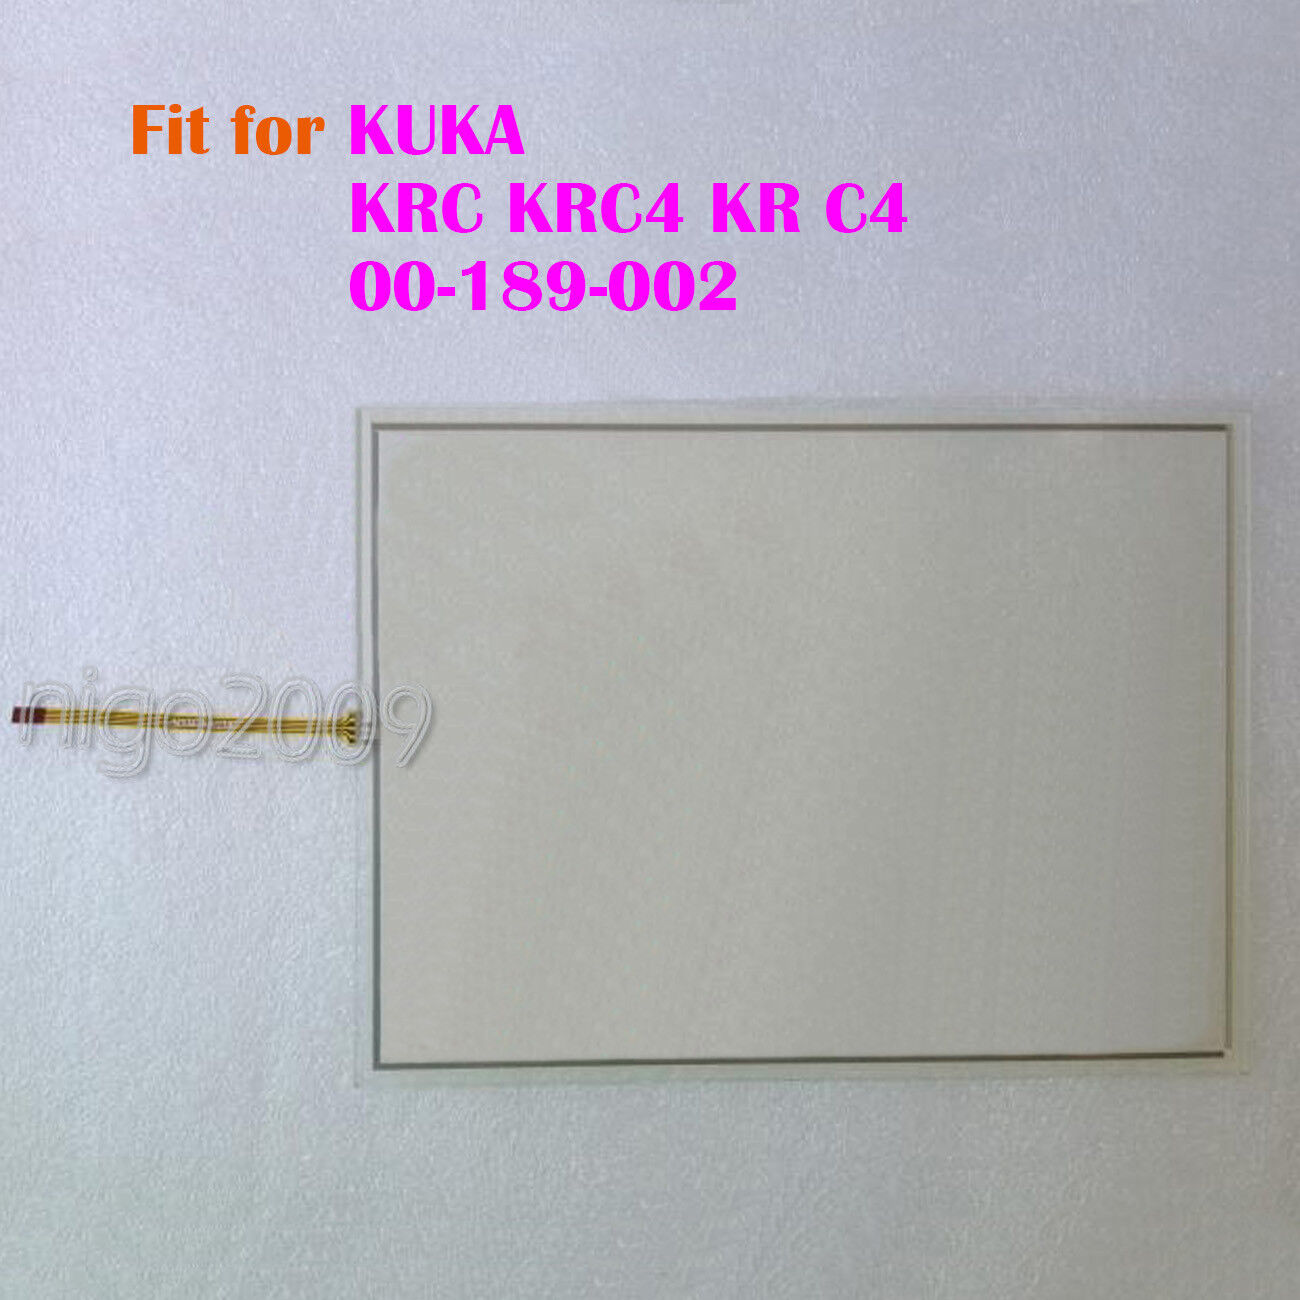 New for KUKA KRC KRC4 KR C4 00-189-002 Touch Screen Glass Touch Panel